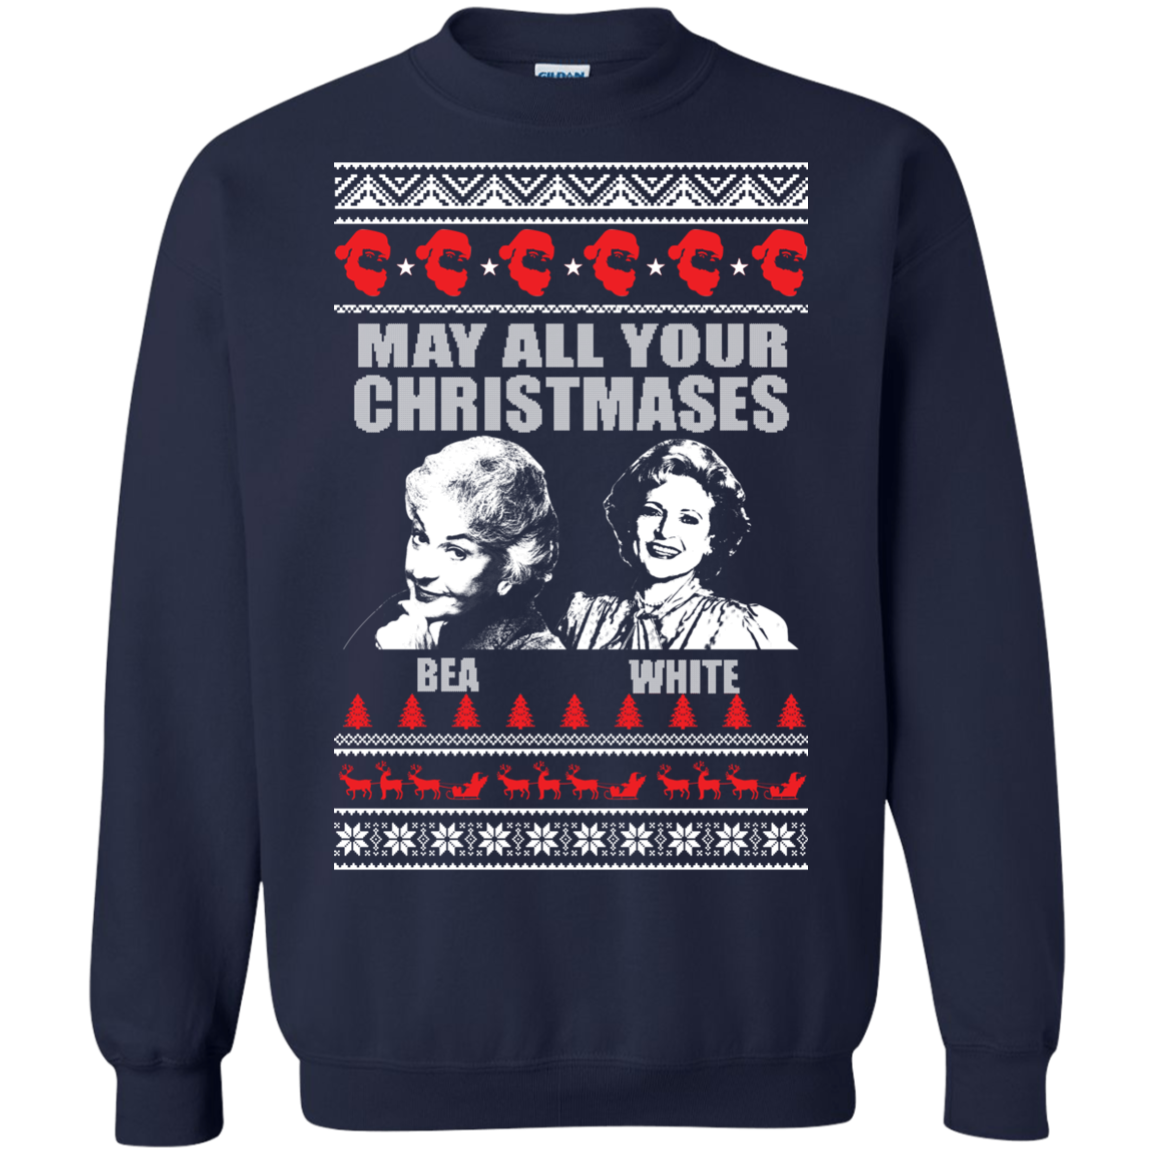 Blue And White Christmas Sweater.Golden Girl Christmas May All Your Christmases Bea White Christmas Sweater